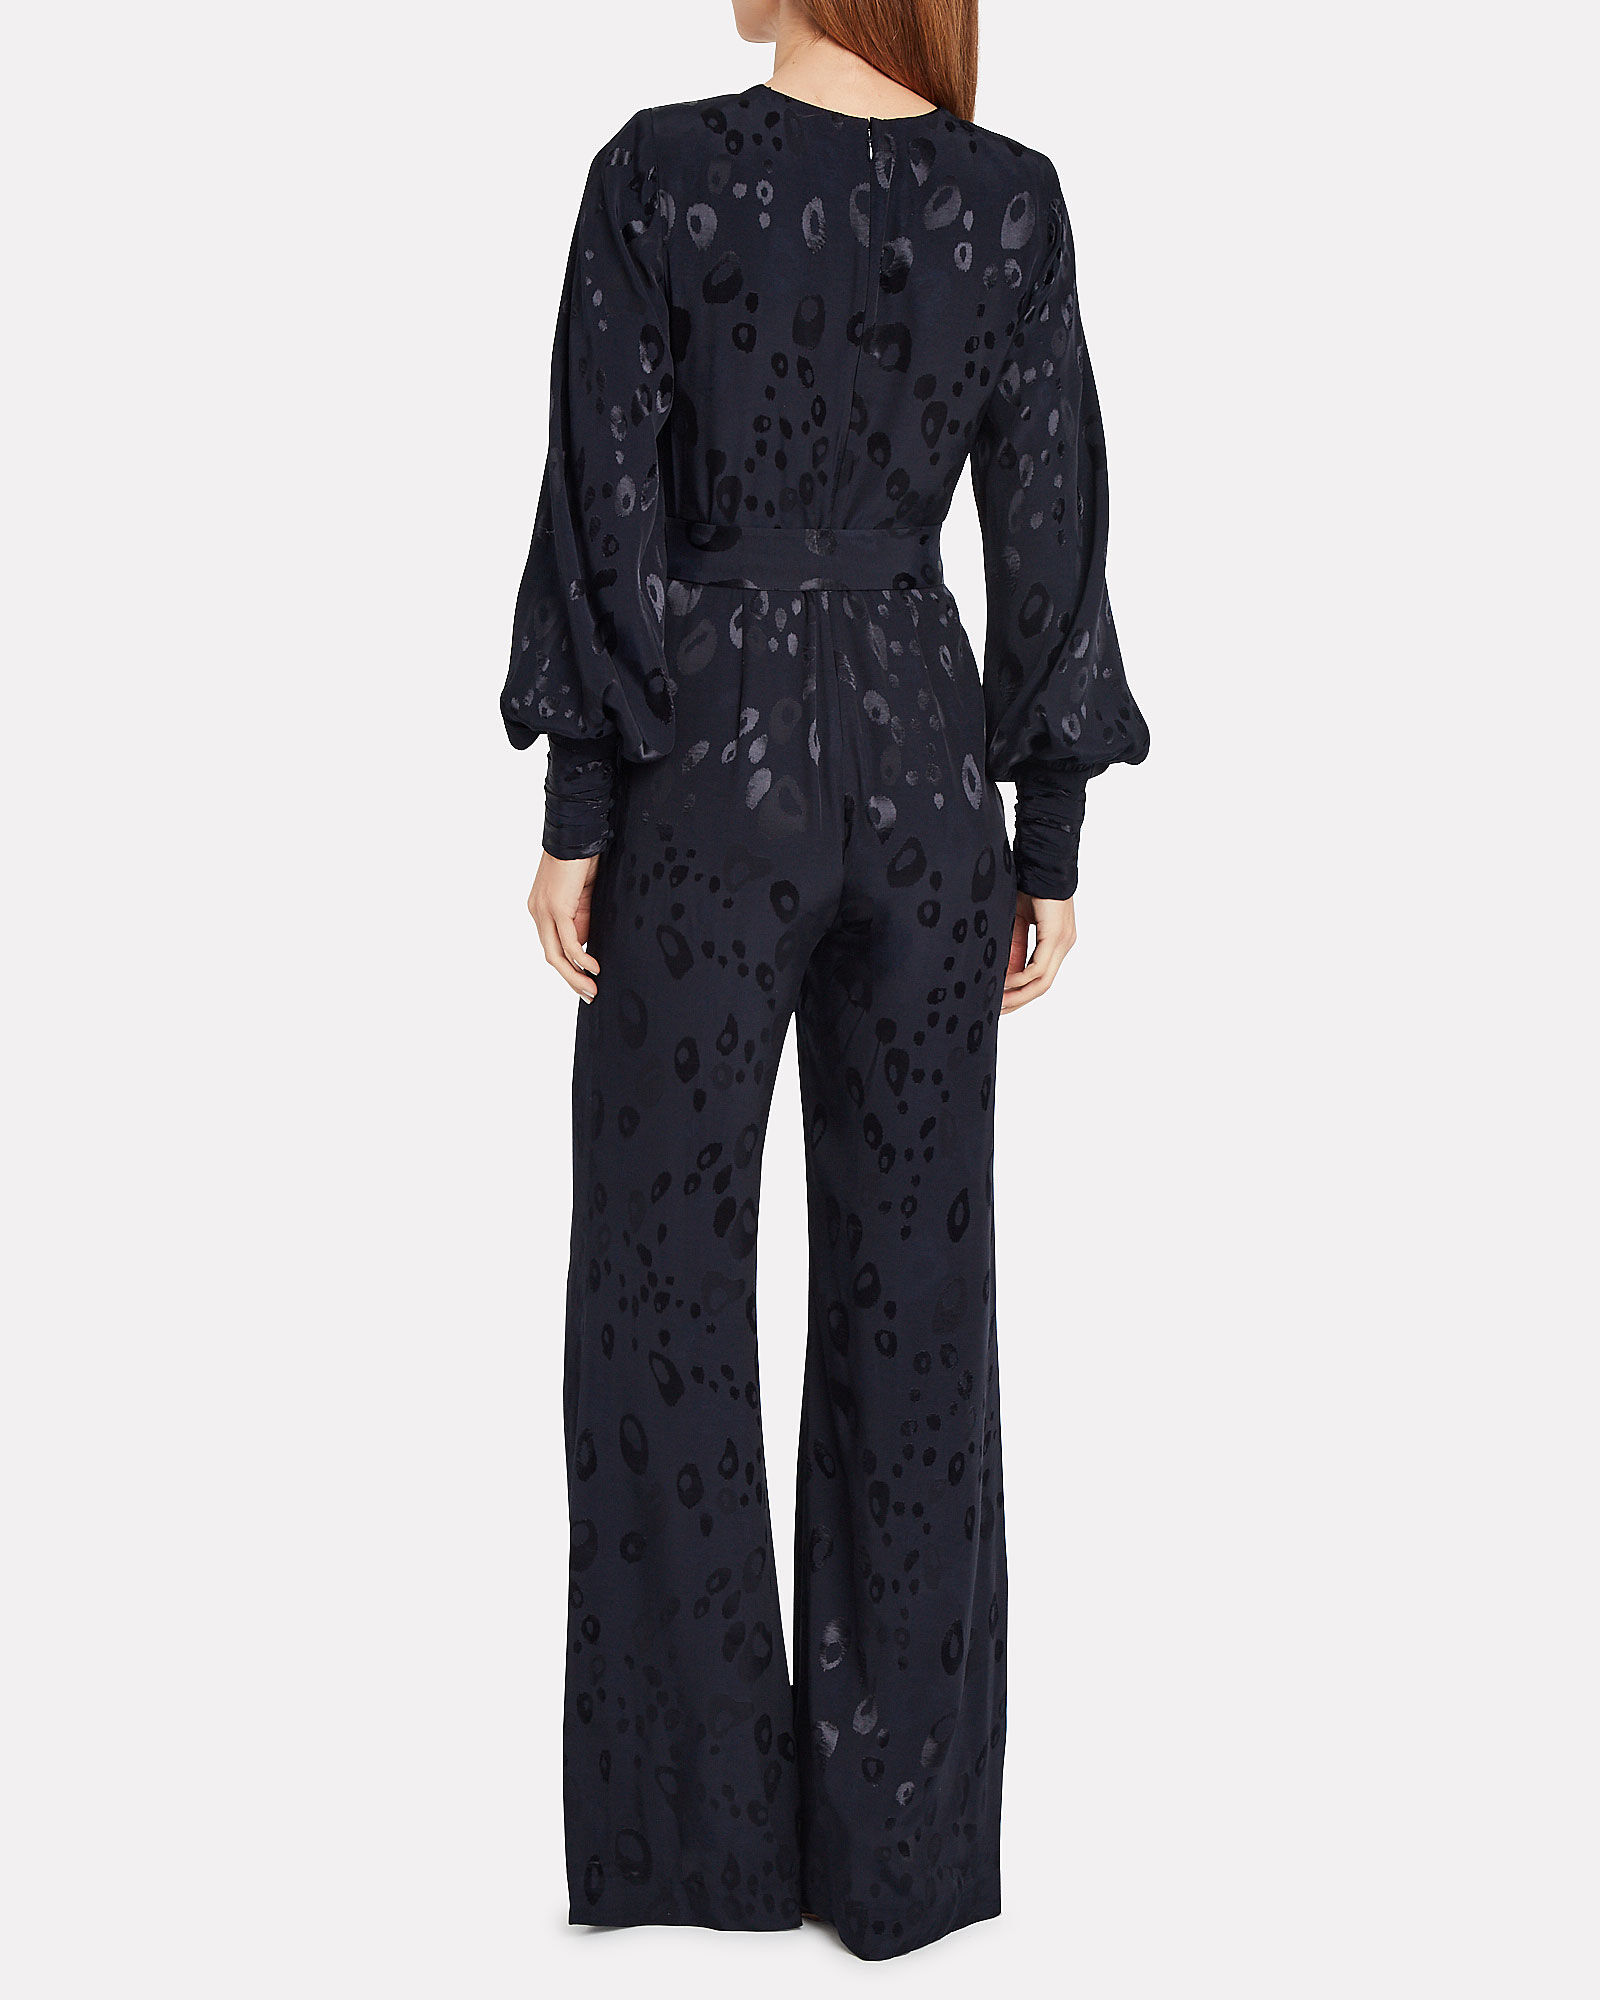 Suna Animal Jacquard Jumpsuit, NAVY, hi-res